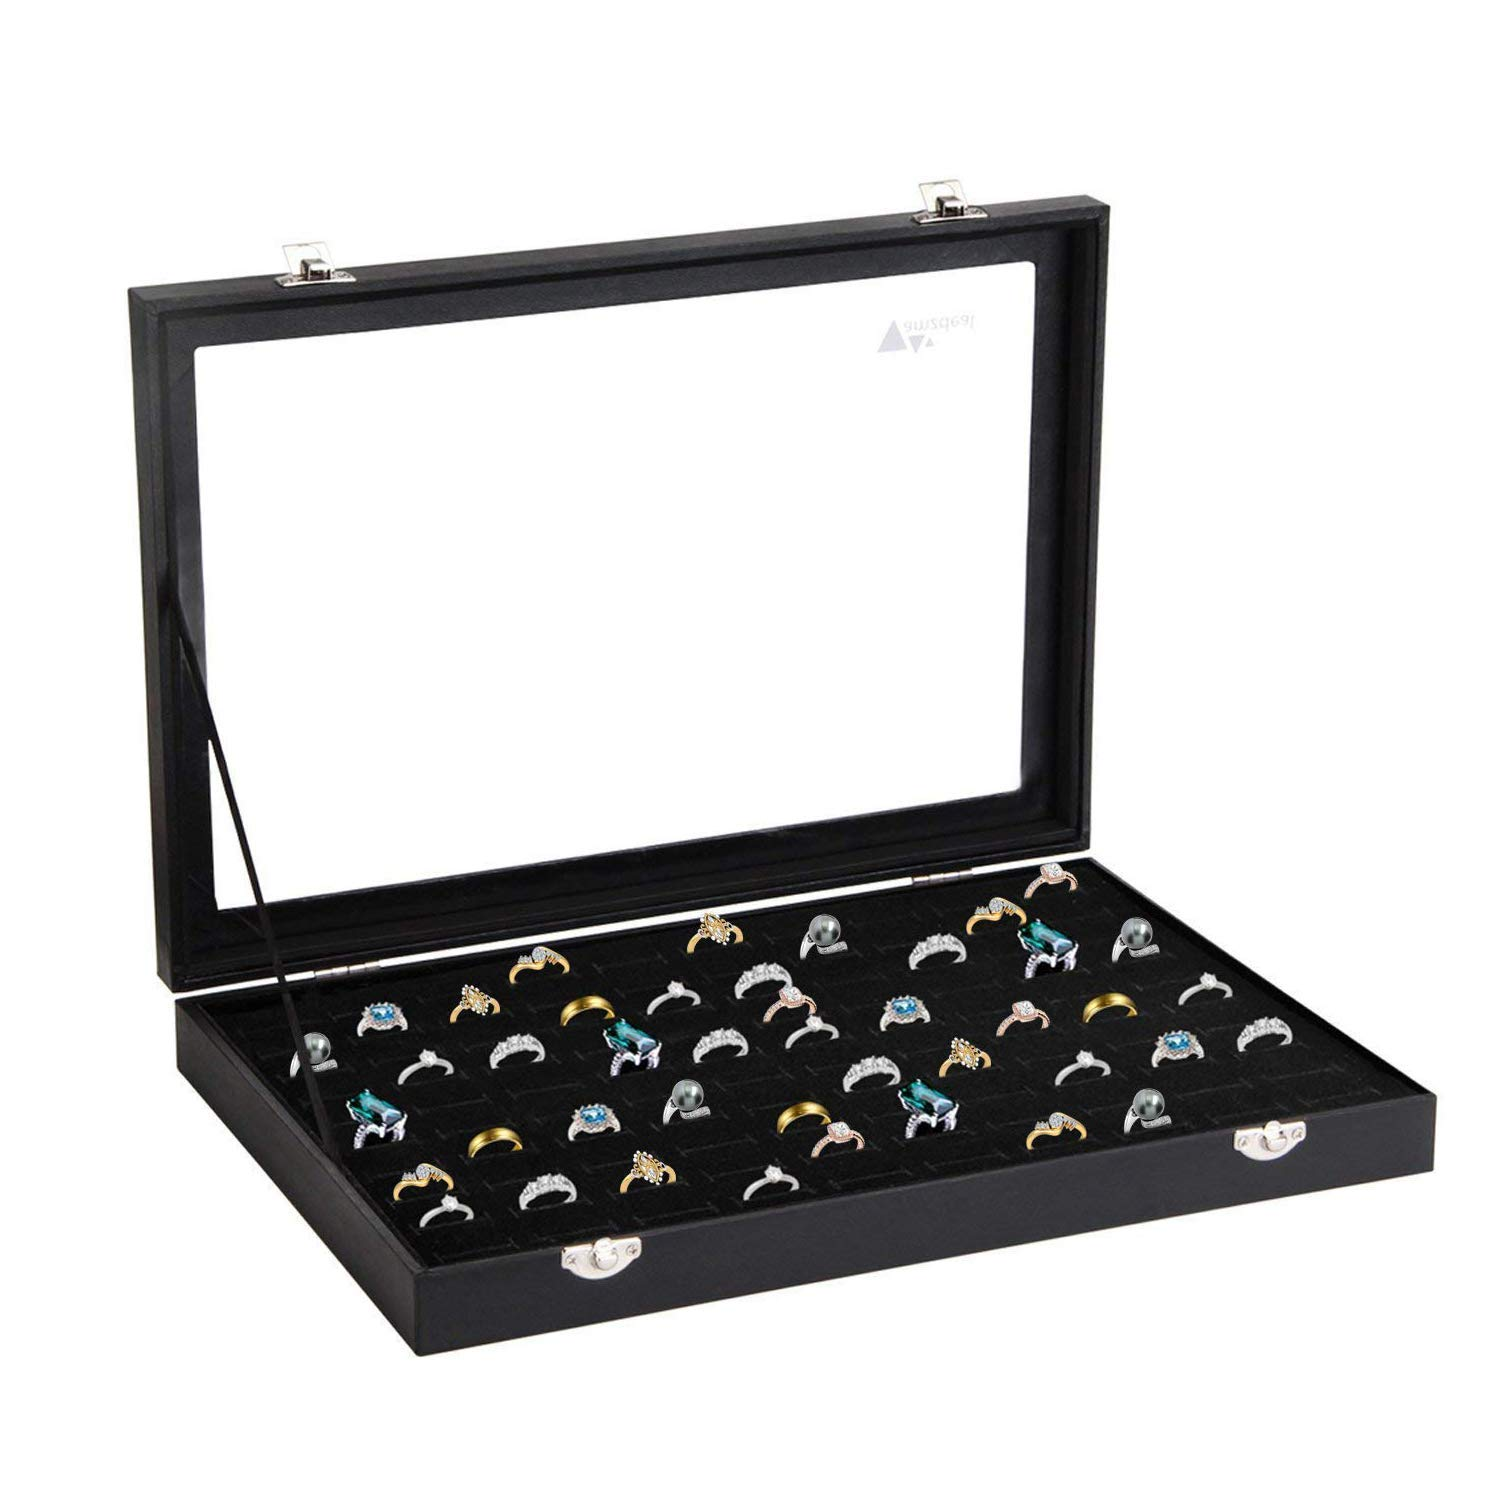 amzdeal Ring Case 100 Slots Ring Box Organizer Holder Jewelry Display Storage Collector Earring Showcase Ring Tray, Ideal Gift for Women and Men, Black